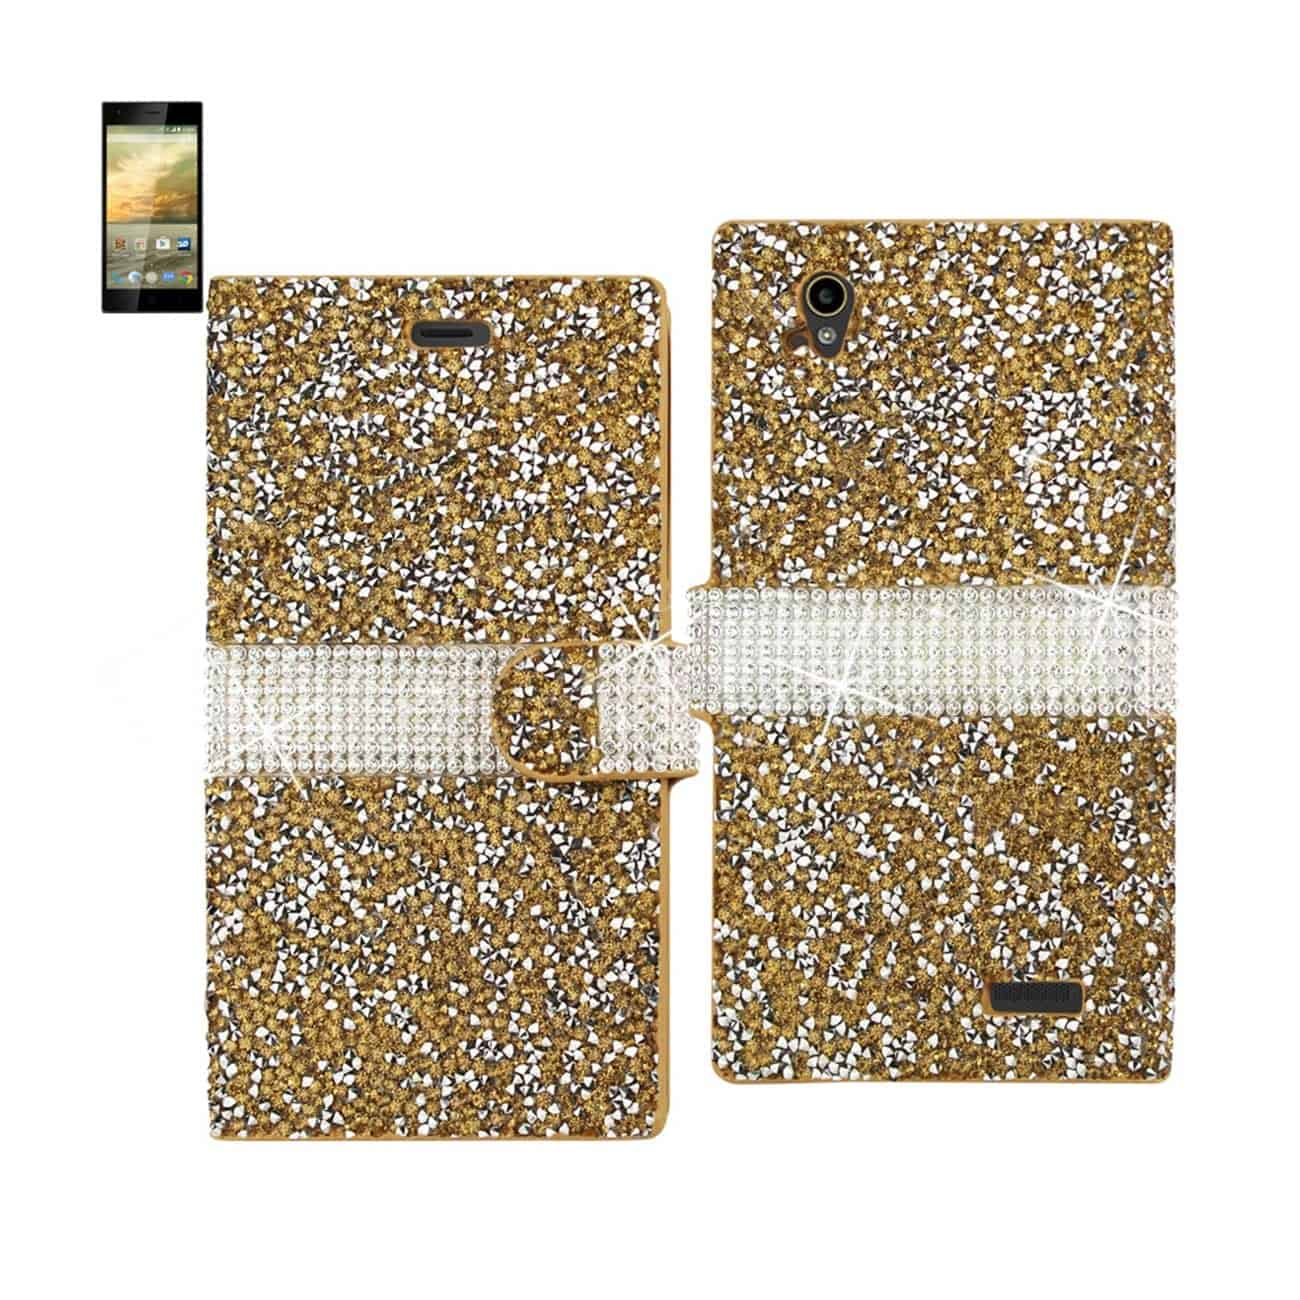 ZTE WARP ELITE JEWELRY RHINESTONE WALLET CASE IN GOLD